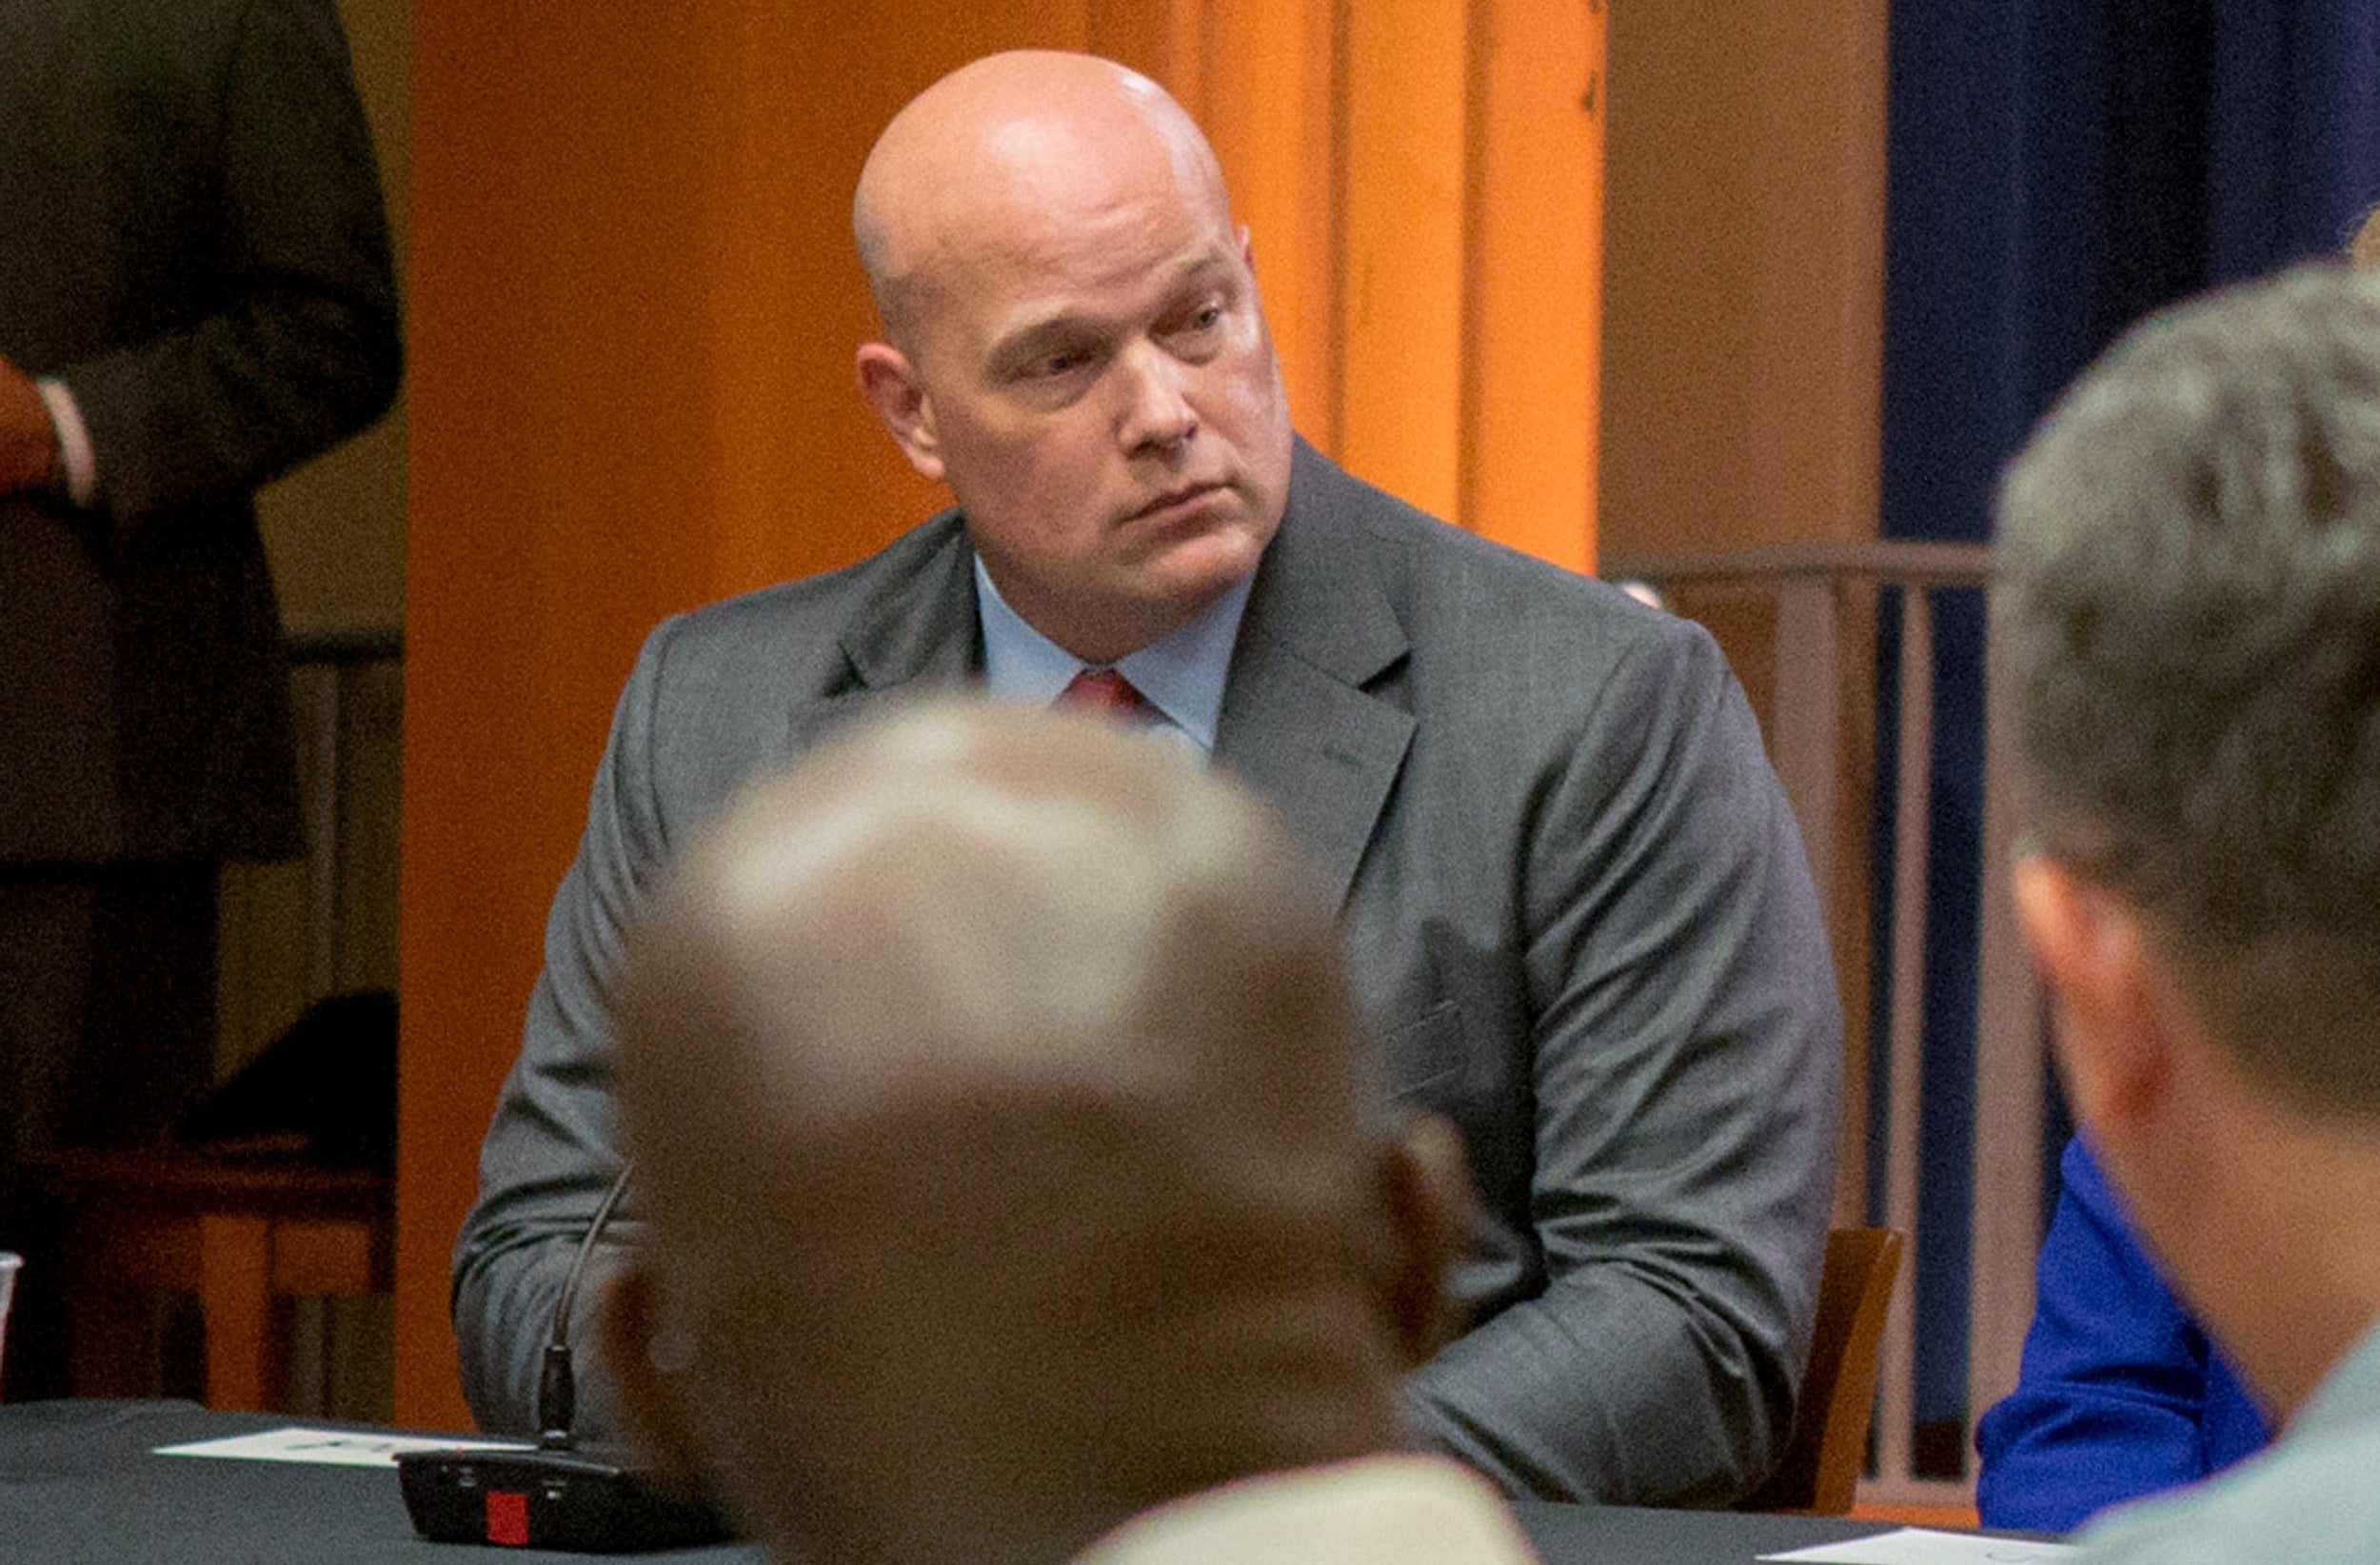 Whitaker sitting at a table. He's bald. The view of him is partially blocked by a different bald guy.